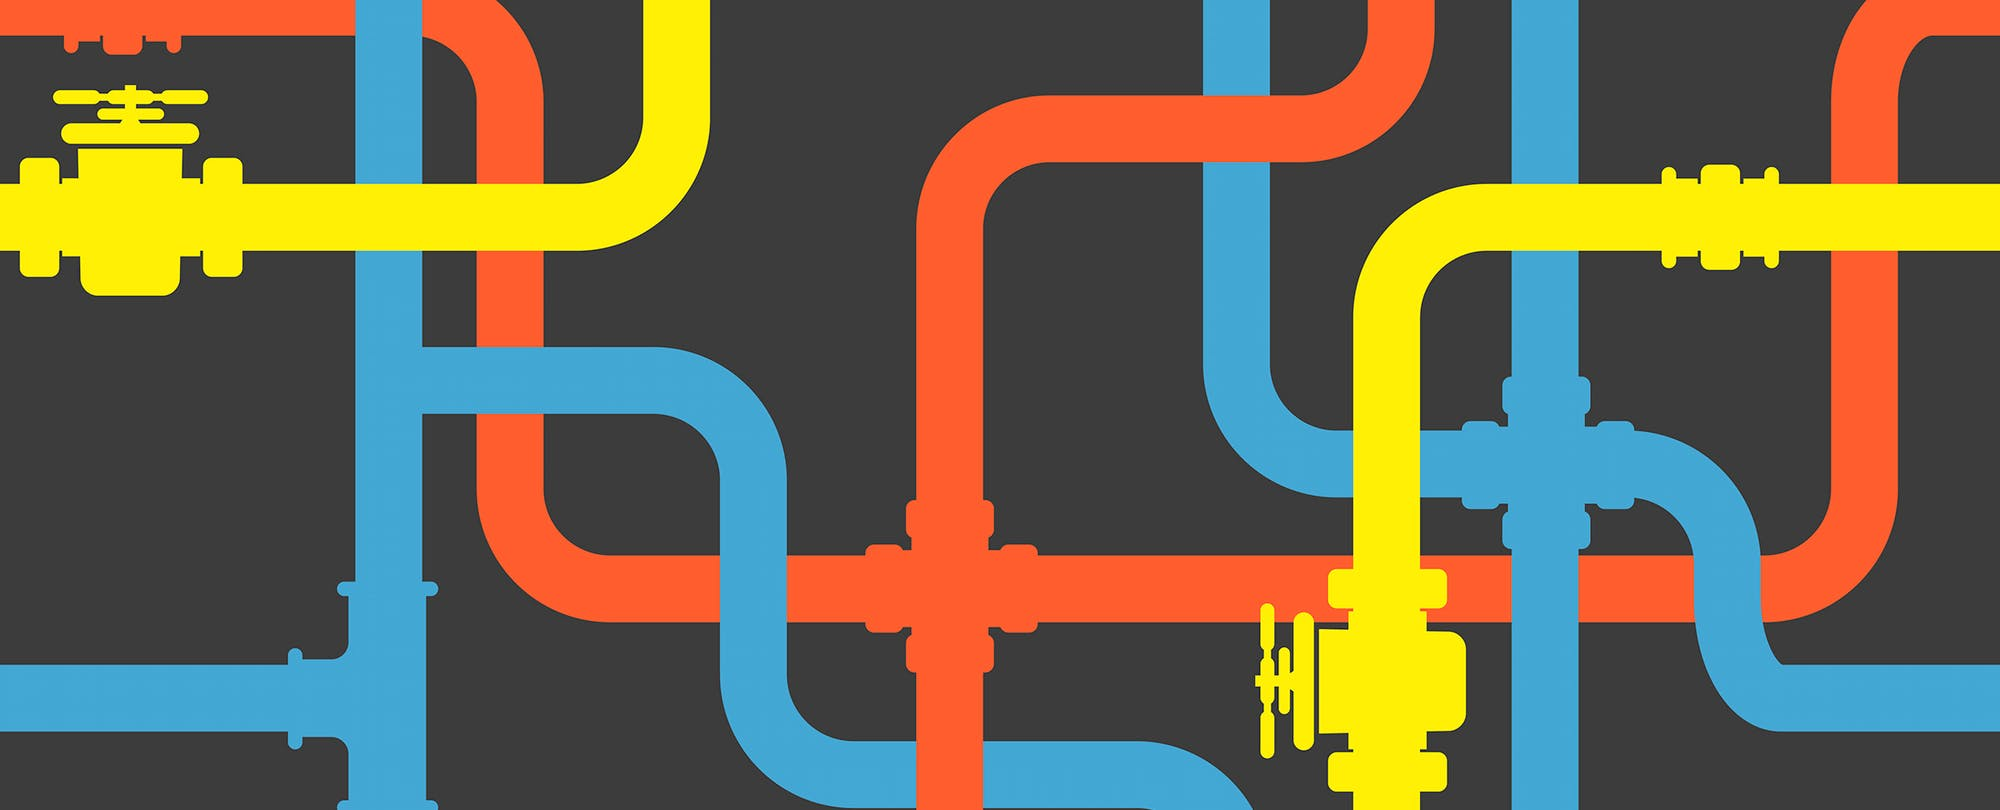 Why Fixing the Pipeline Alone Won't End Edtech's Diversity Problem